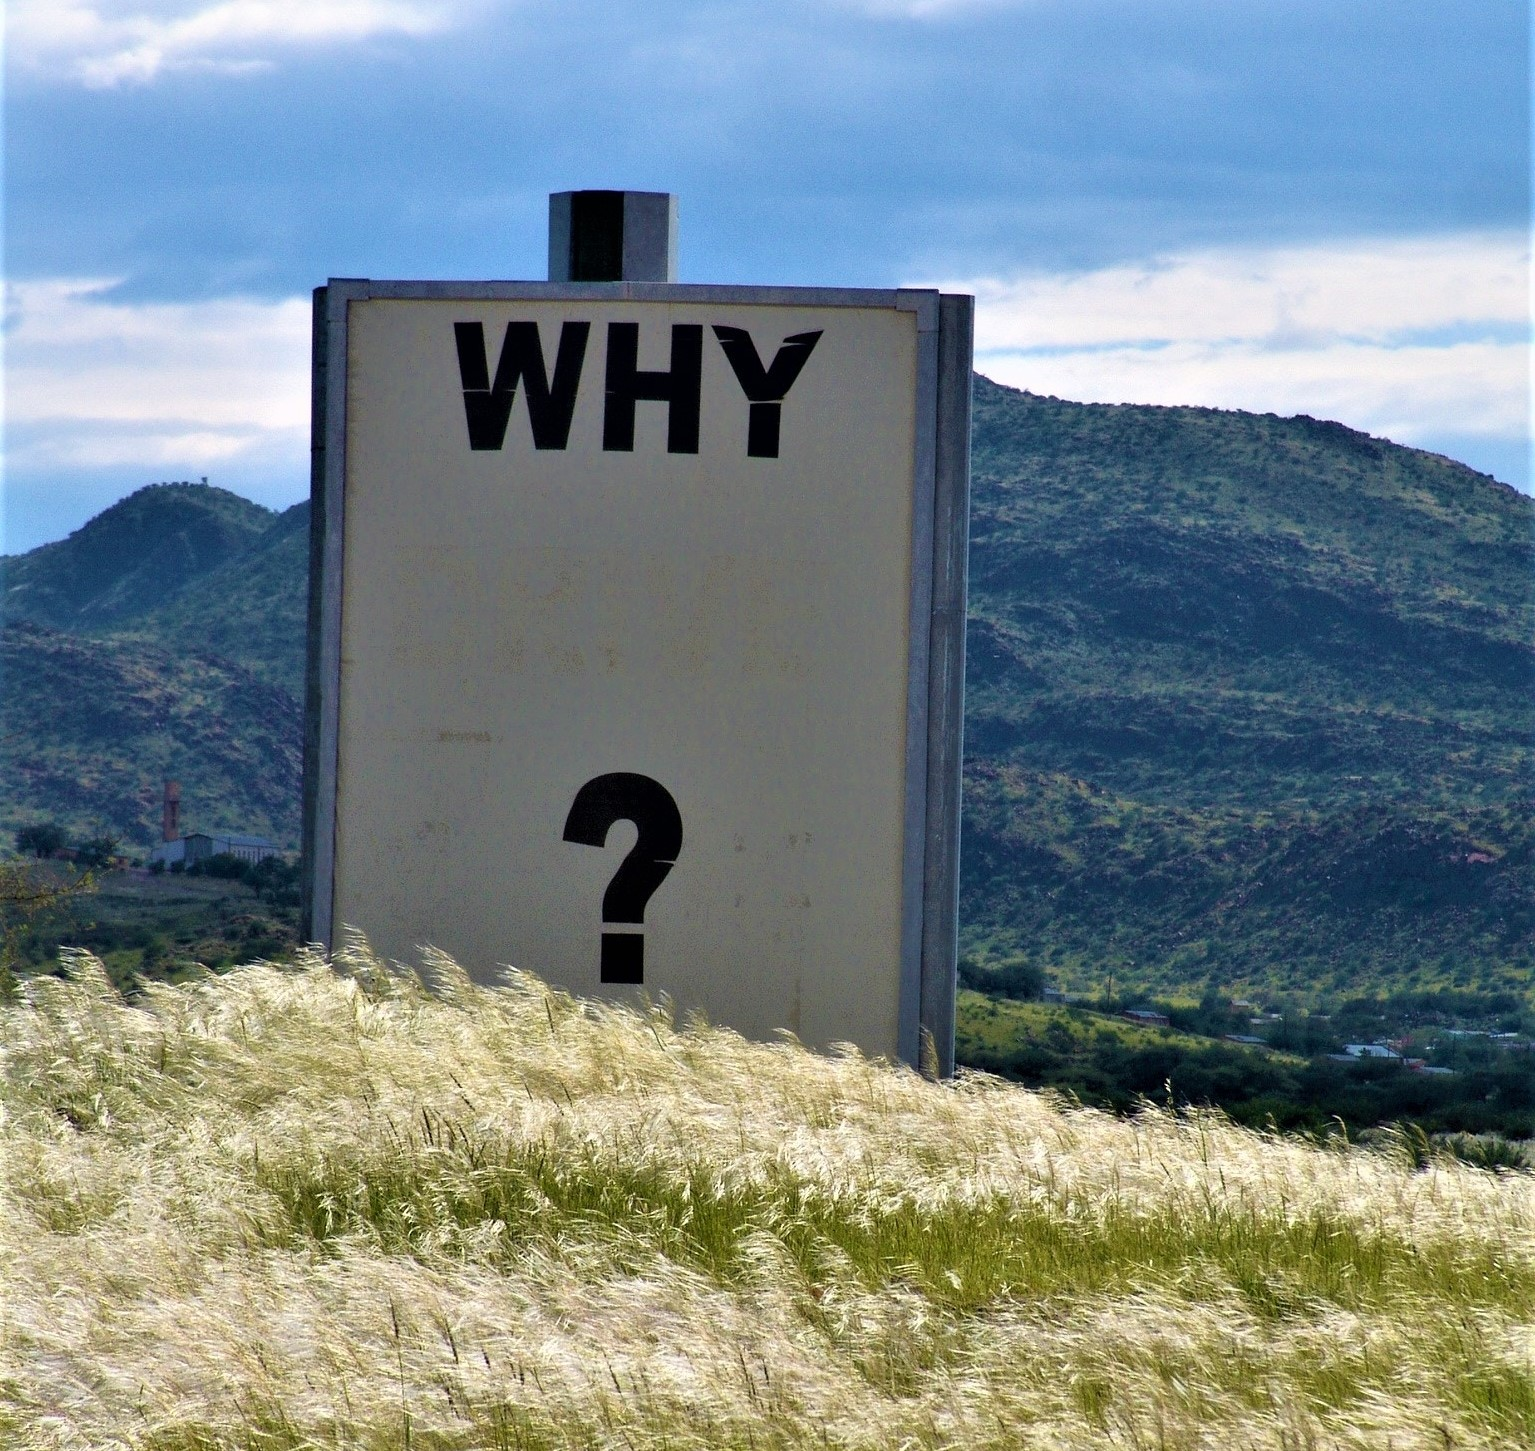 why|why|why|why-not|ask-yourself-why